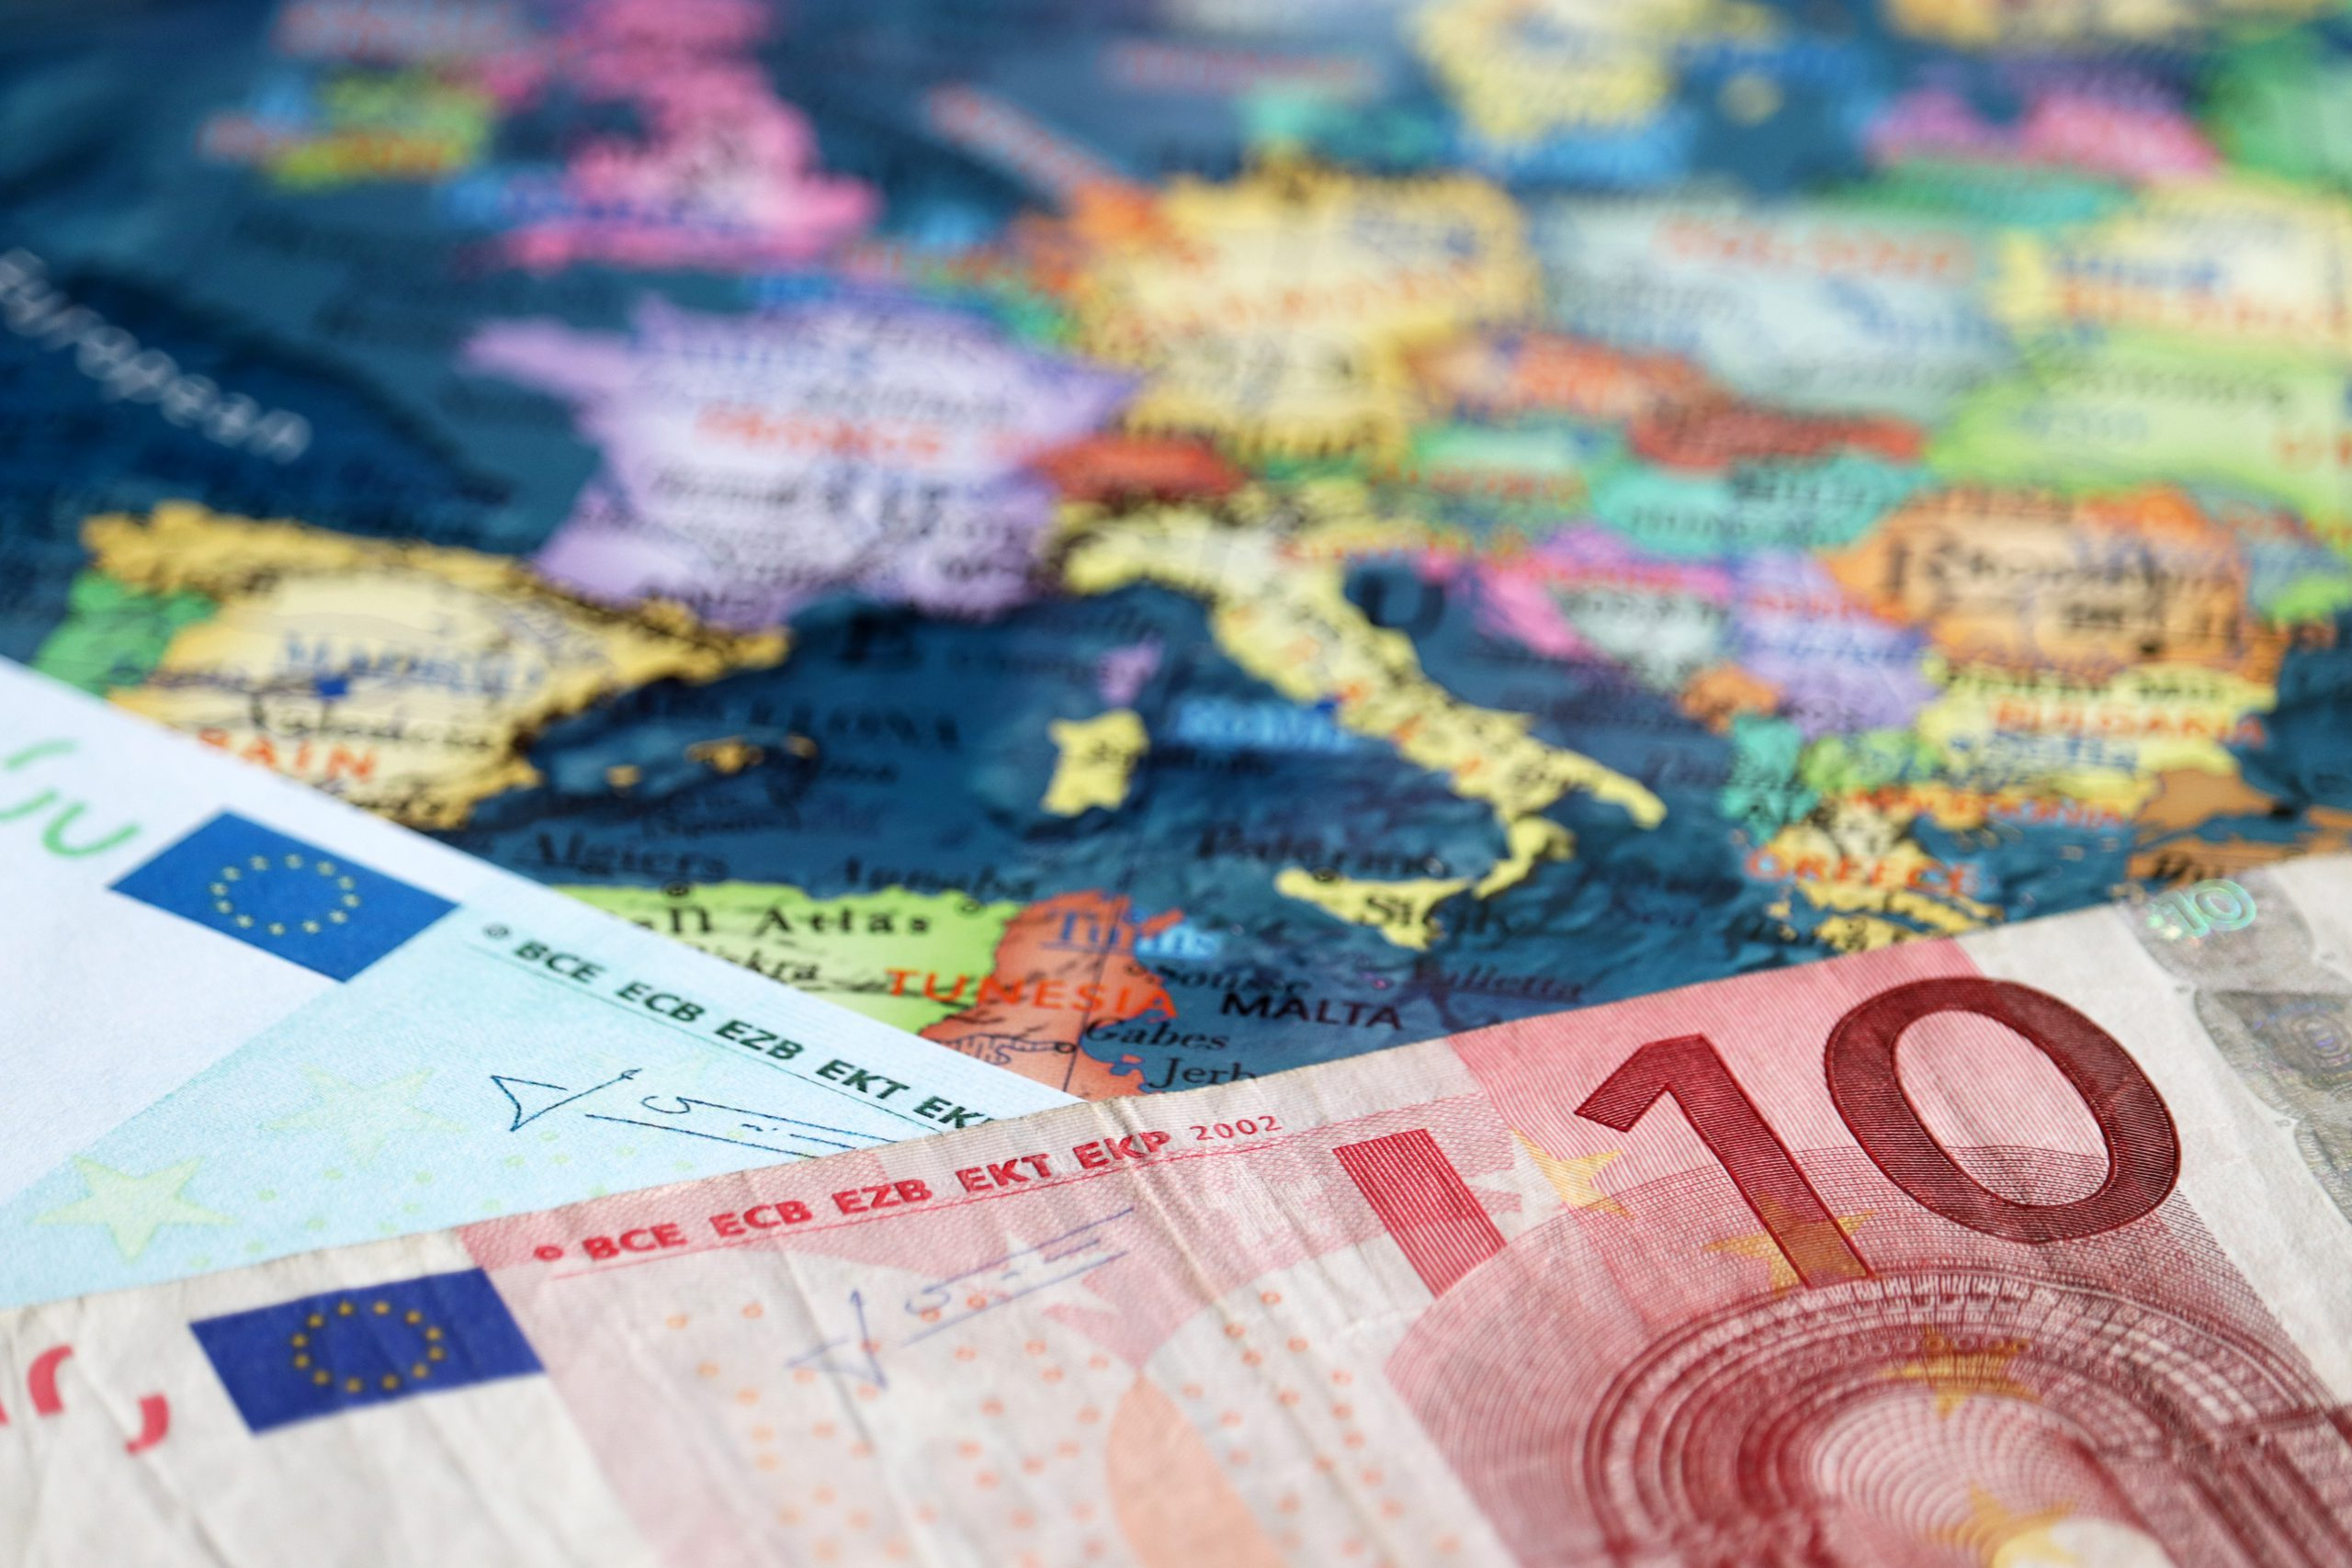 The Black Swan Capital 6 investment principles for expats in Europe